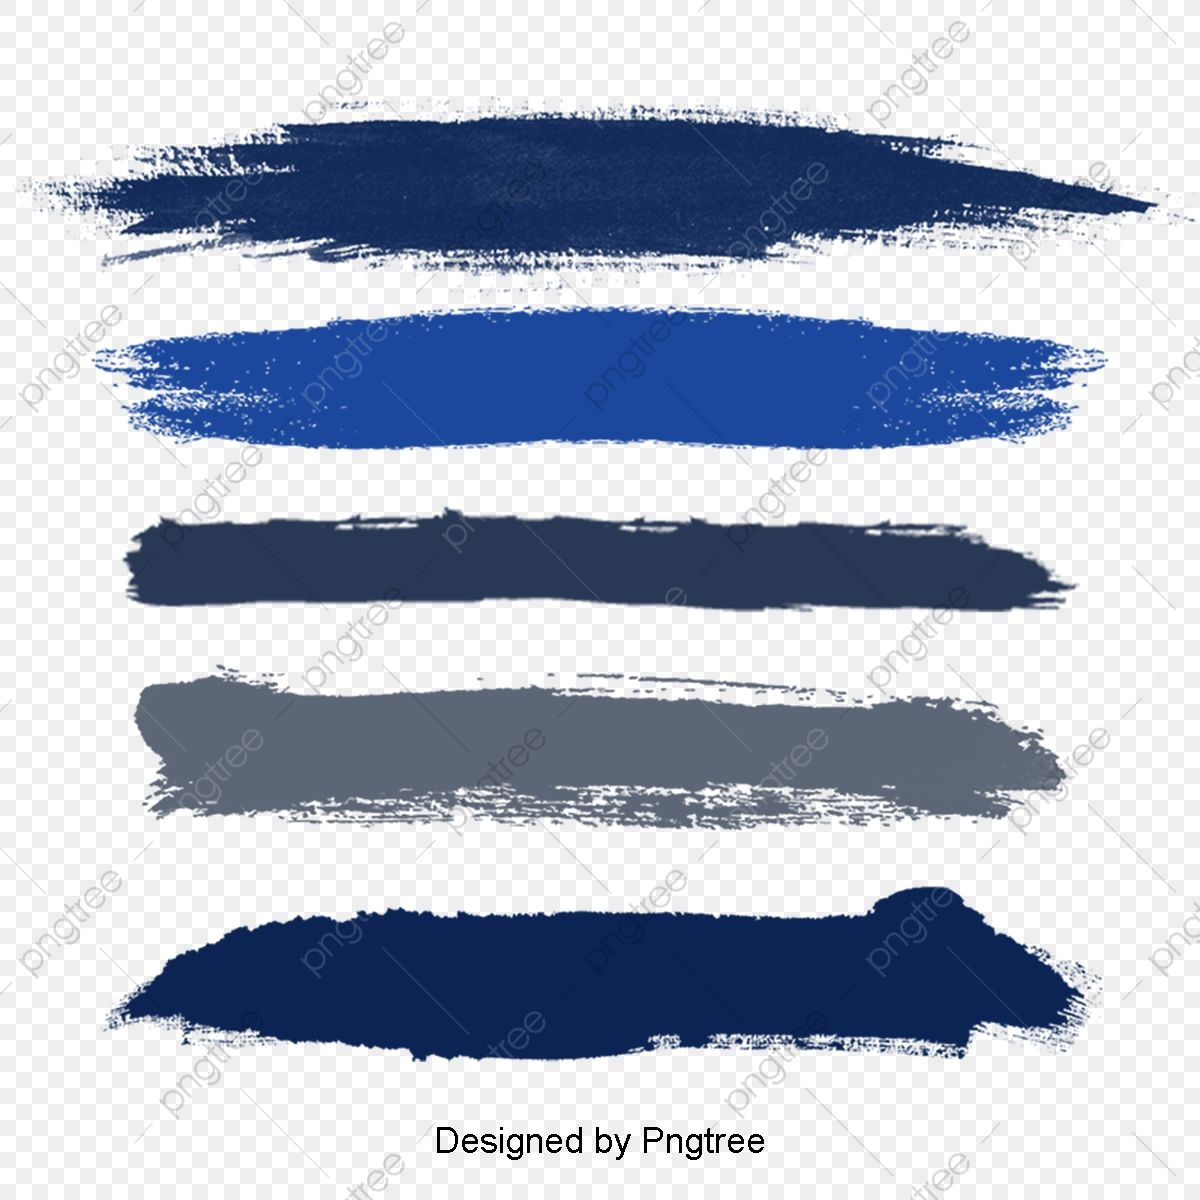 Vector Hand Painted Brush Strokes Brush Brush Vector Vector Brush Png Transparent Clipart Image And Psd File For Free Download In 2021 Vector Hand Brush Background Brush Strokes